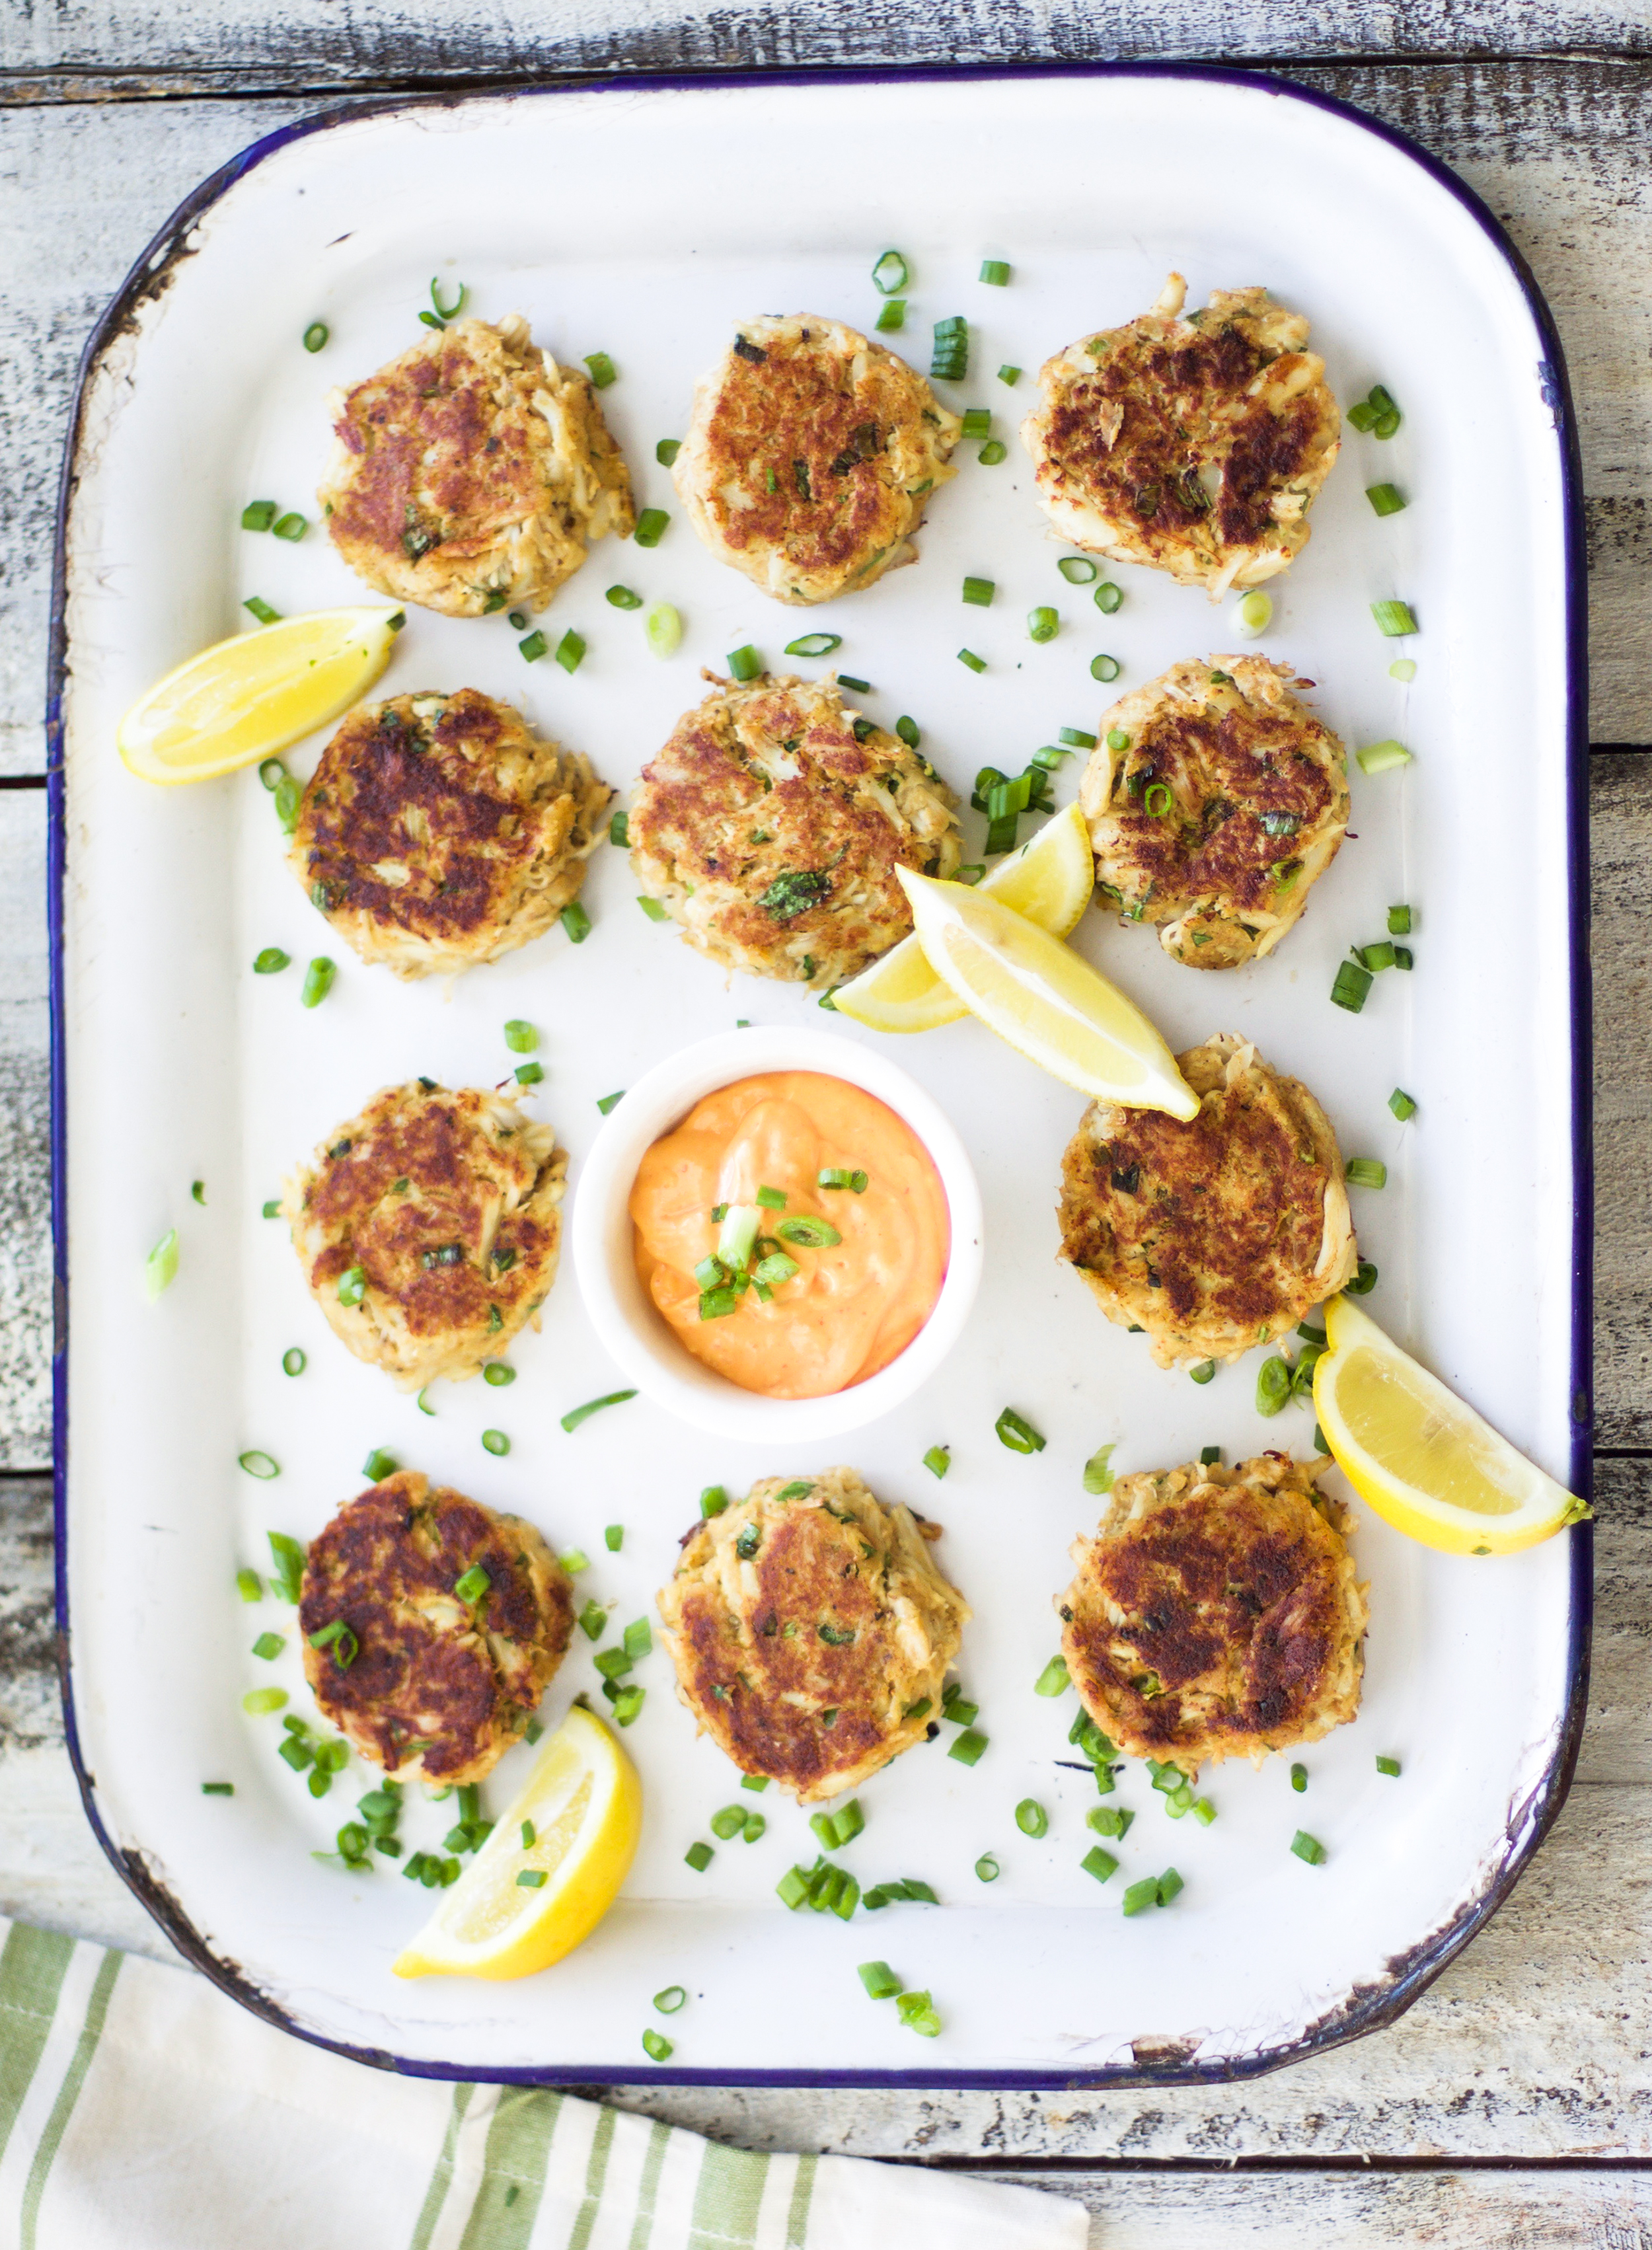 Baked Crab Cakes with Spicy Garlic Dipping Sauce: My Diary of Us